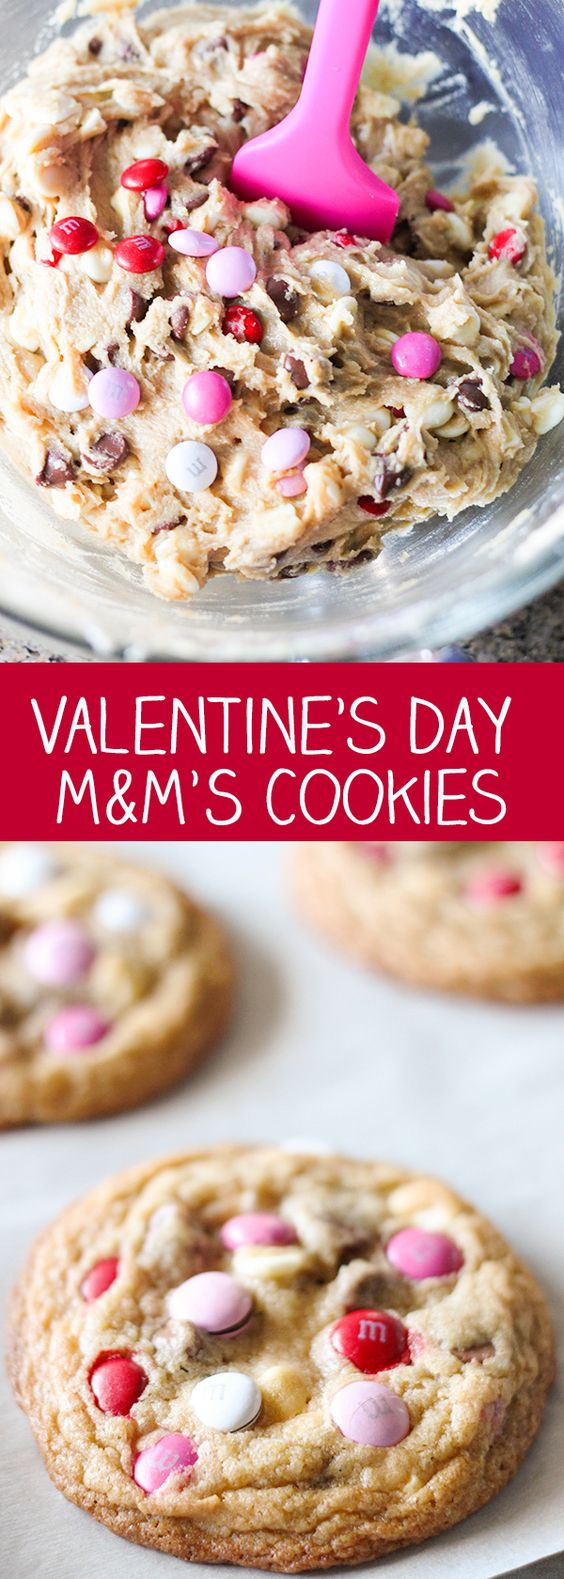 Valentine's Day M&M'S Cookies